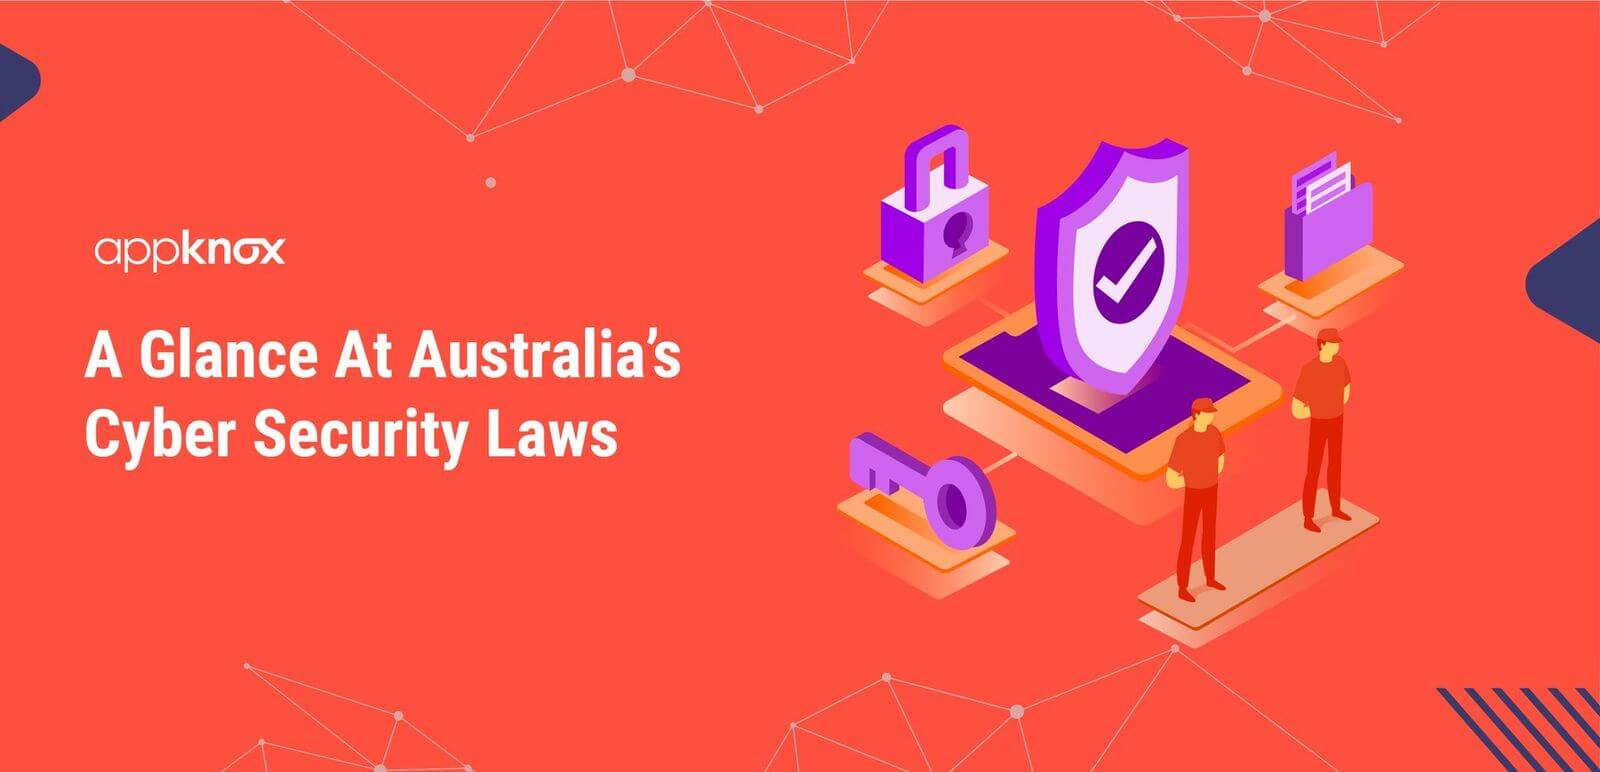 A Glance At Australia's Cyber Security Laws